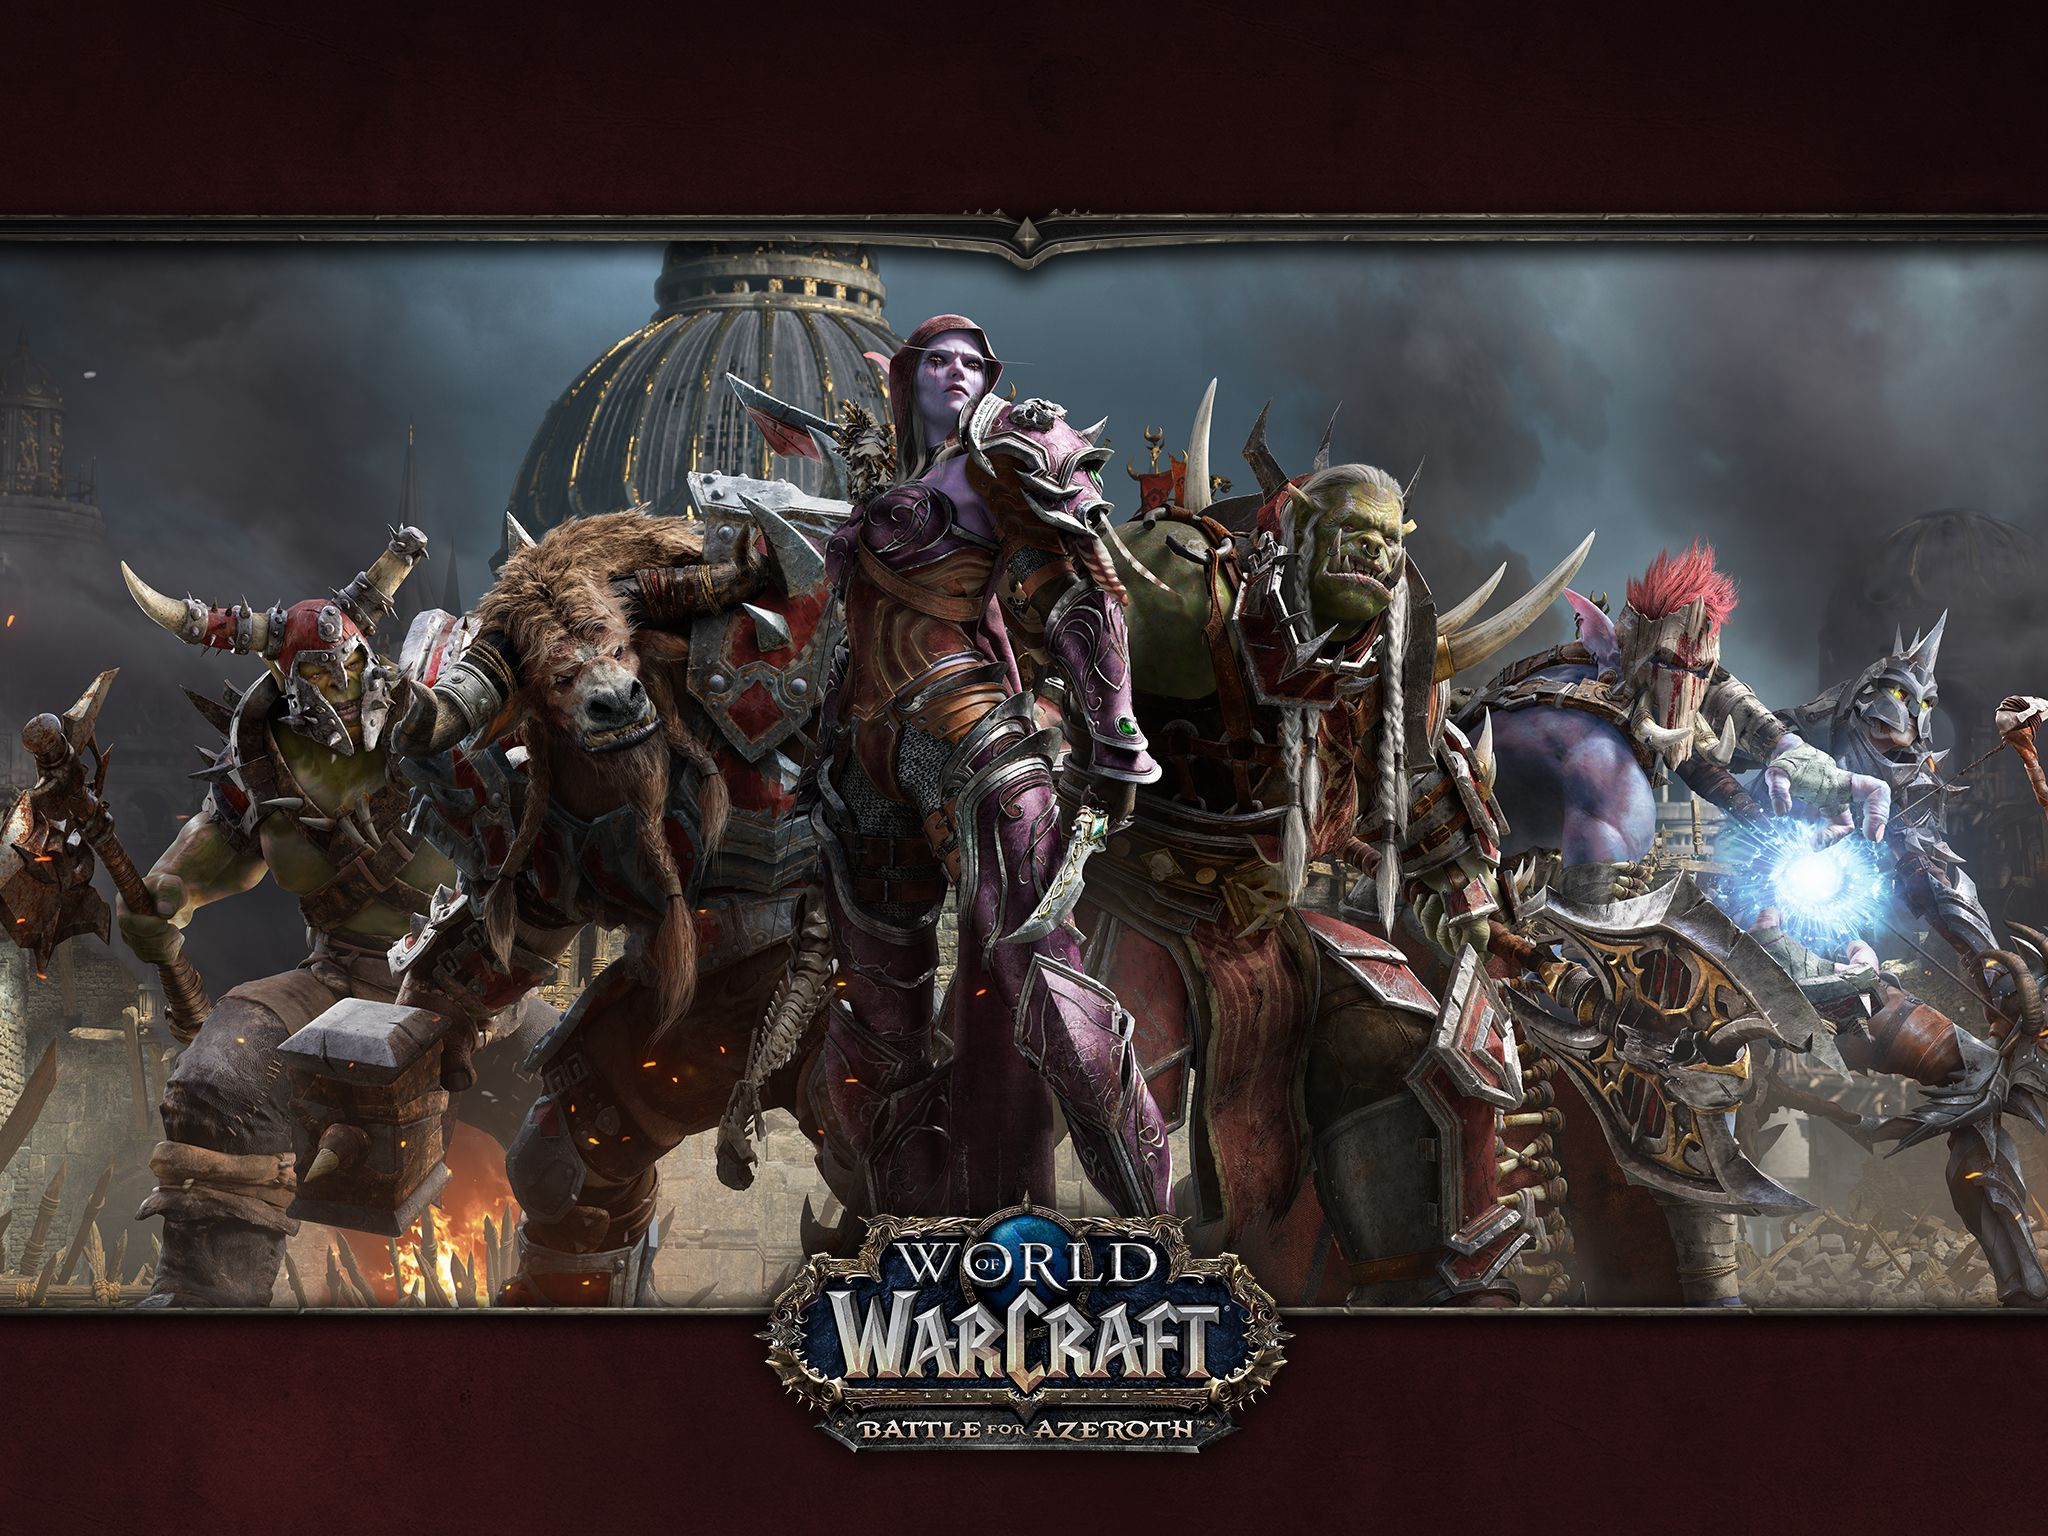 World of Warcraft Battle for Azeroth (With images